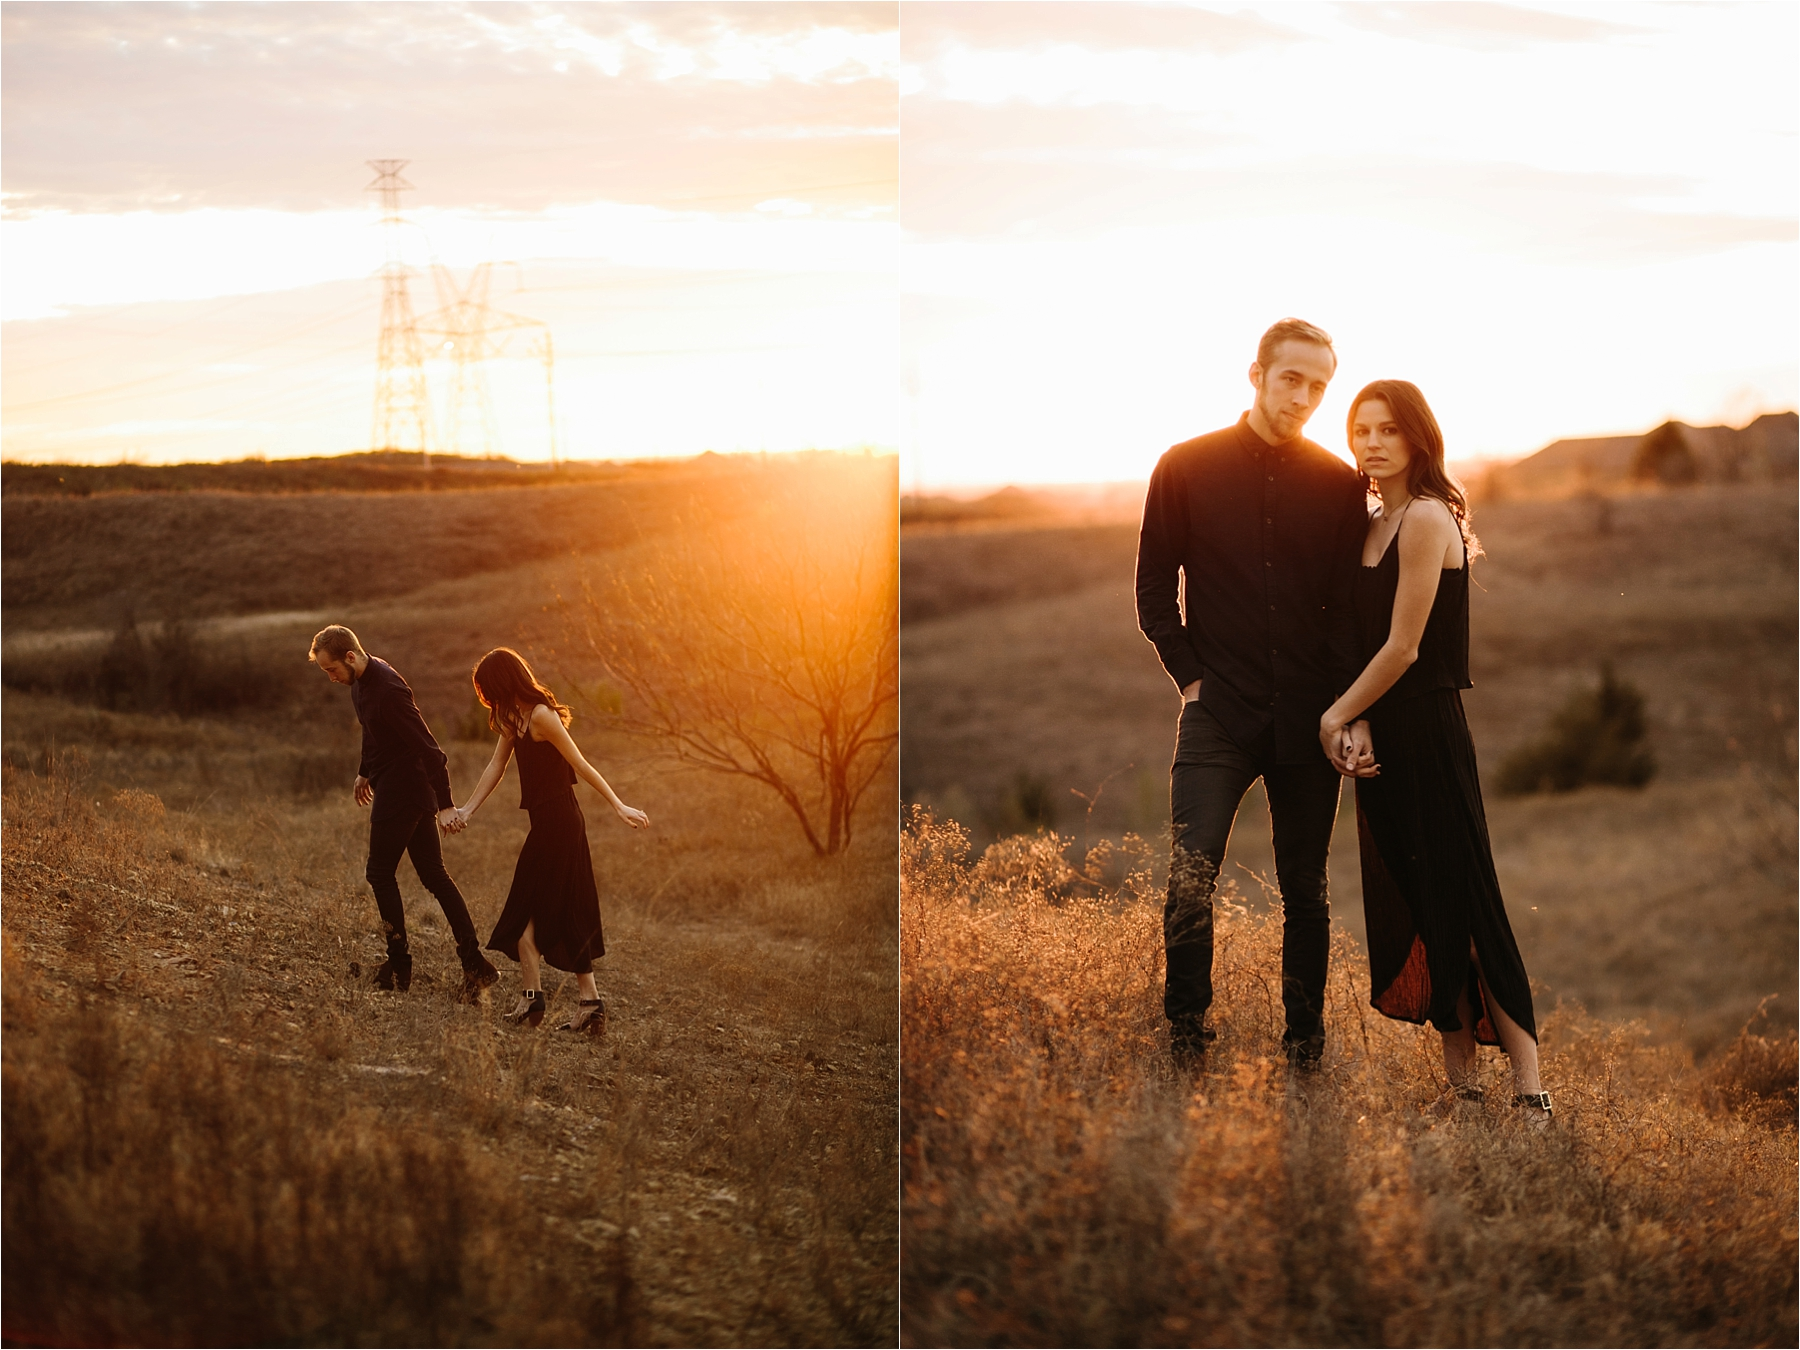 Trey + Phoebe __ a playful, intimate engagement session with dark_neutral outfit inspiration by North Texas Wedding Photographer Rachel Meagan Photography __ 44